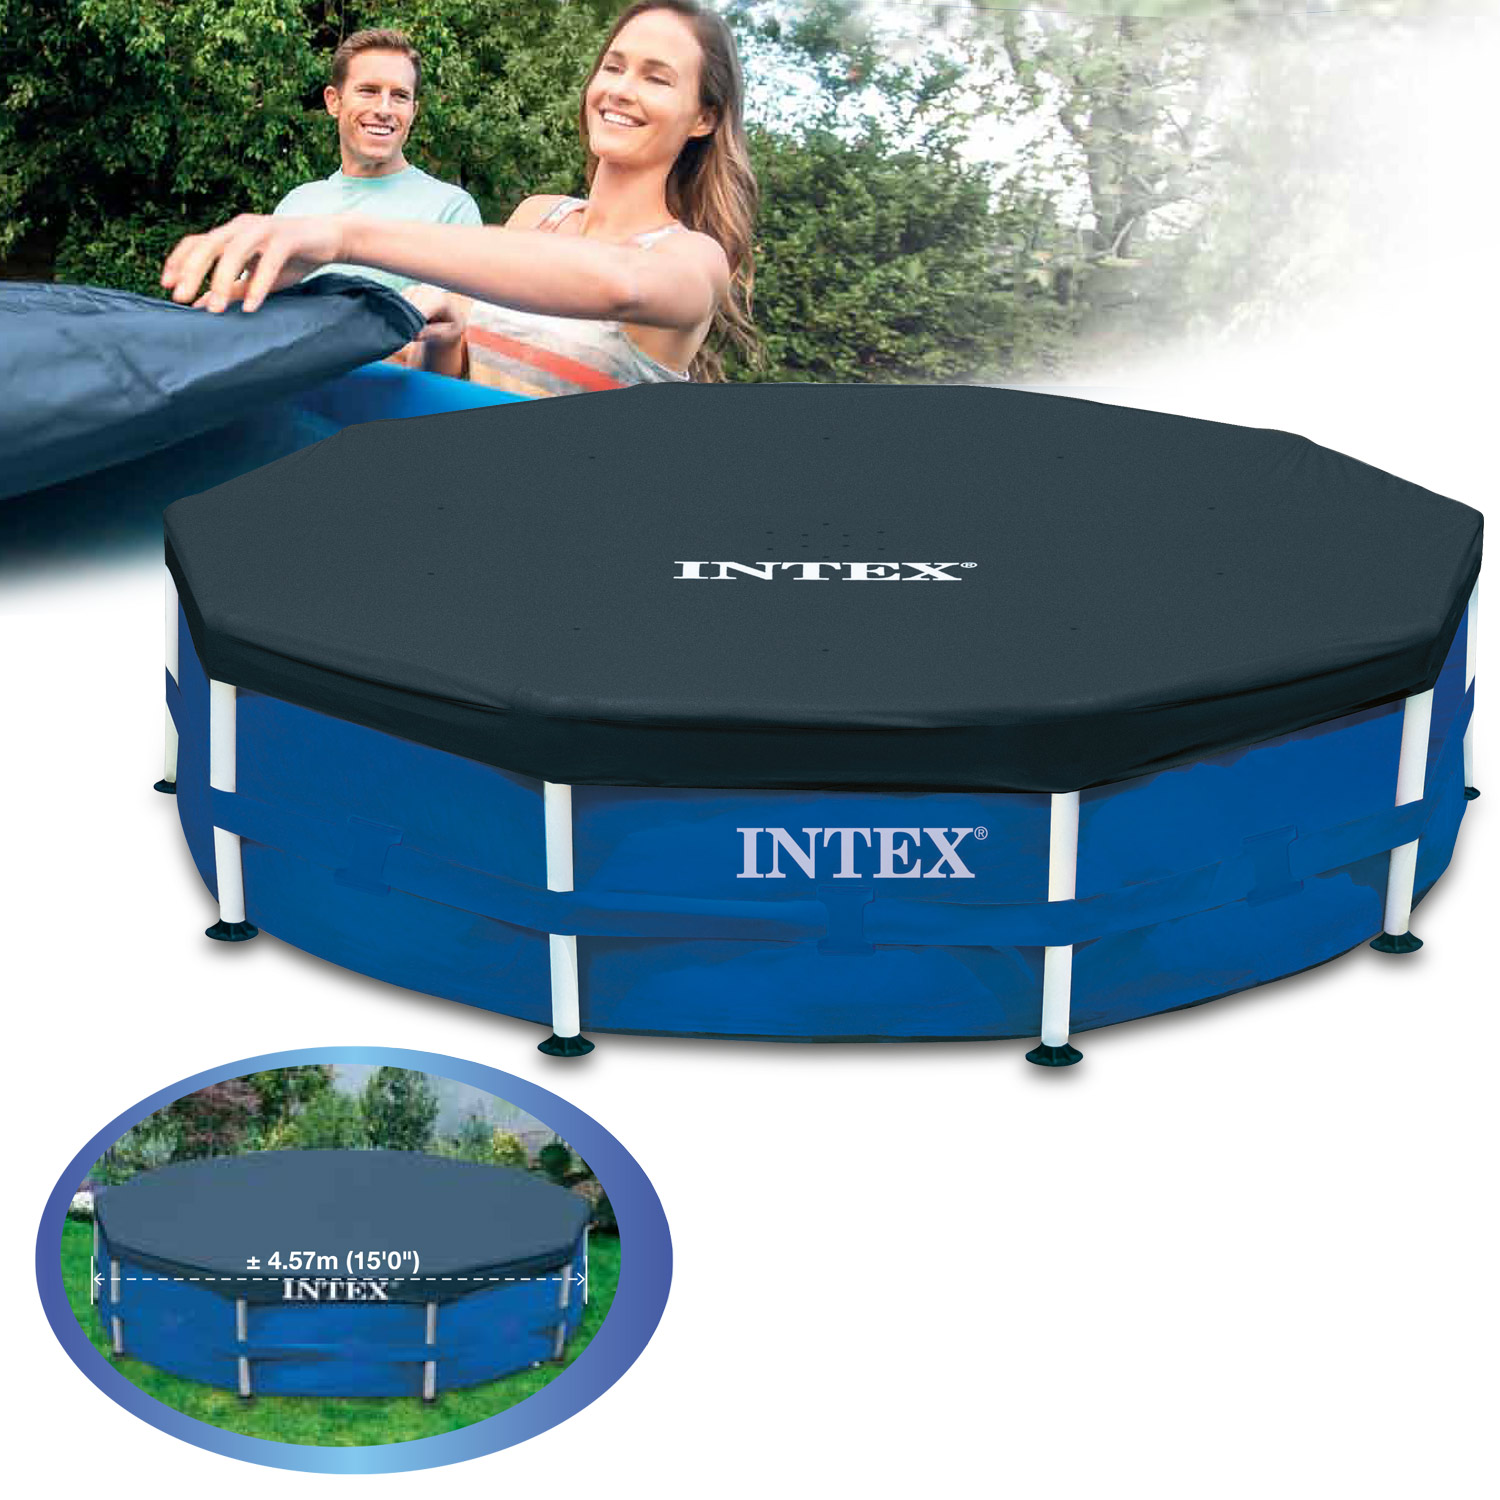 intex 457 abdeckplane poolplane poolabdeckung plane pool. Black Bedroom Furniture Sets. Home Design Ideas